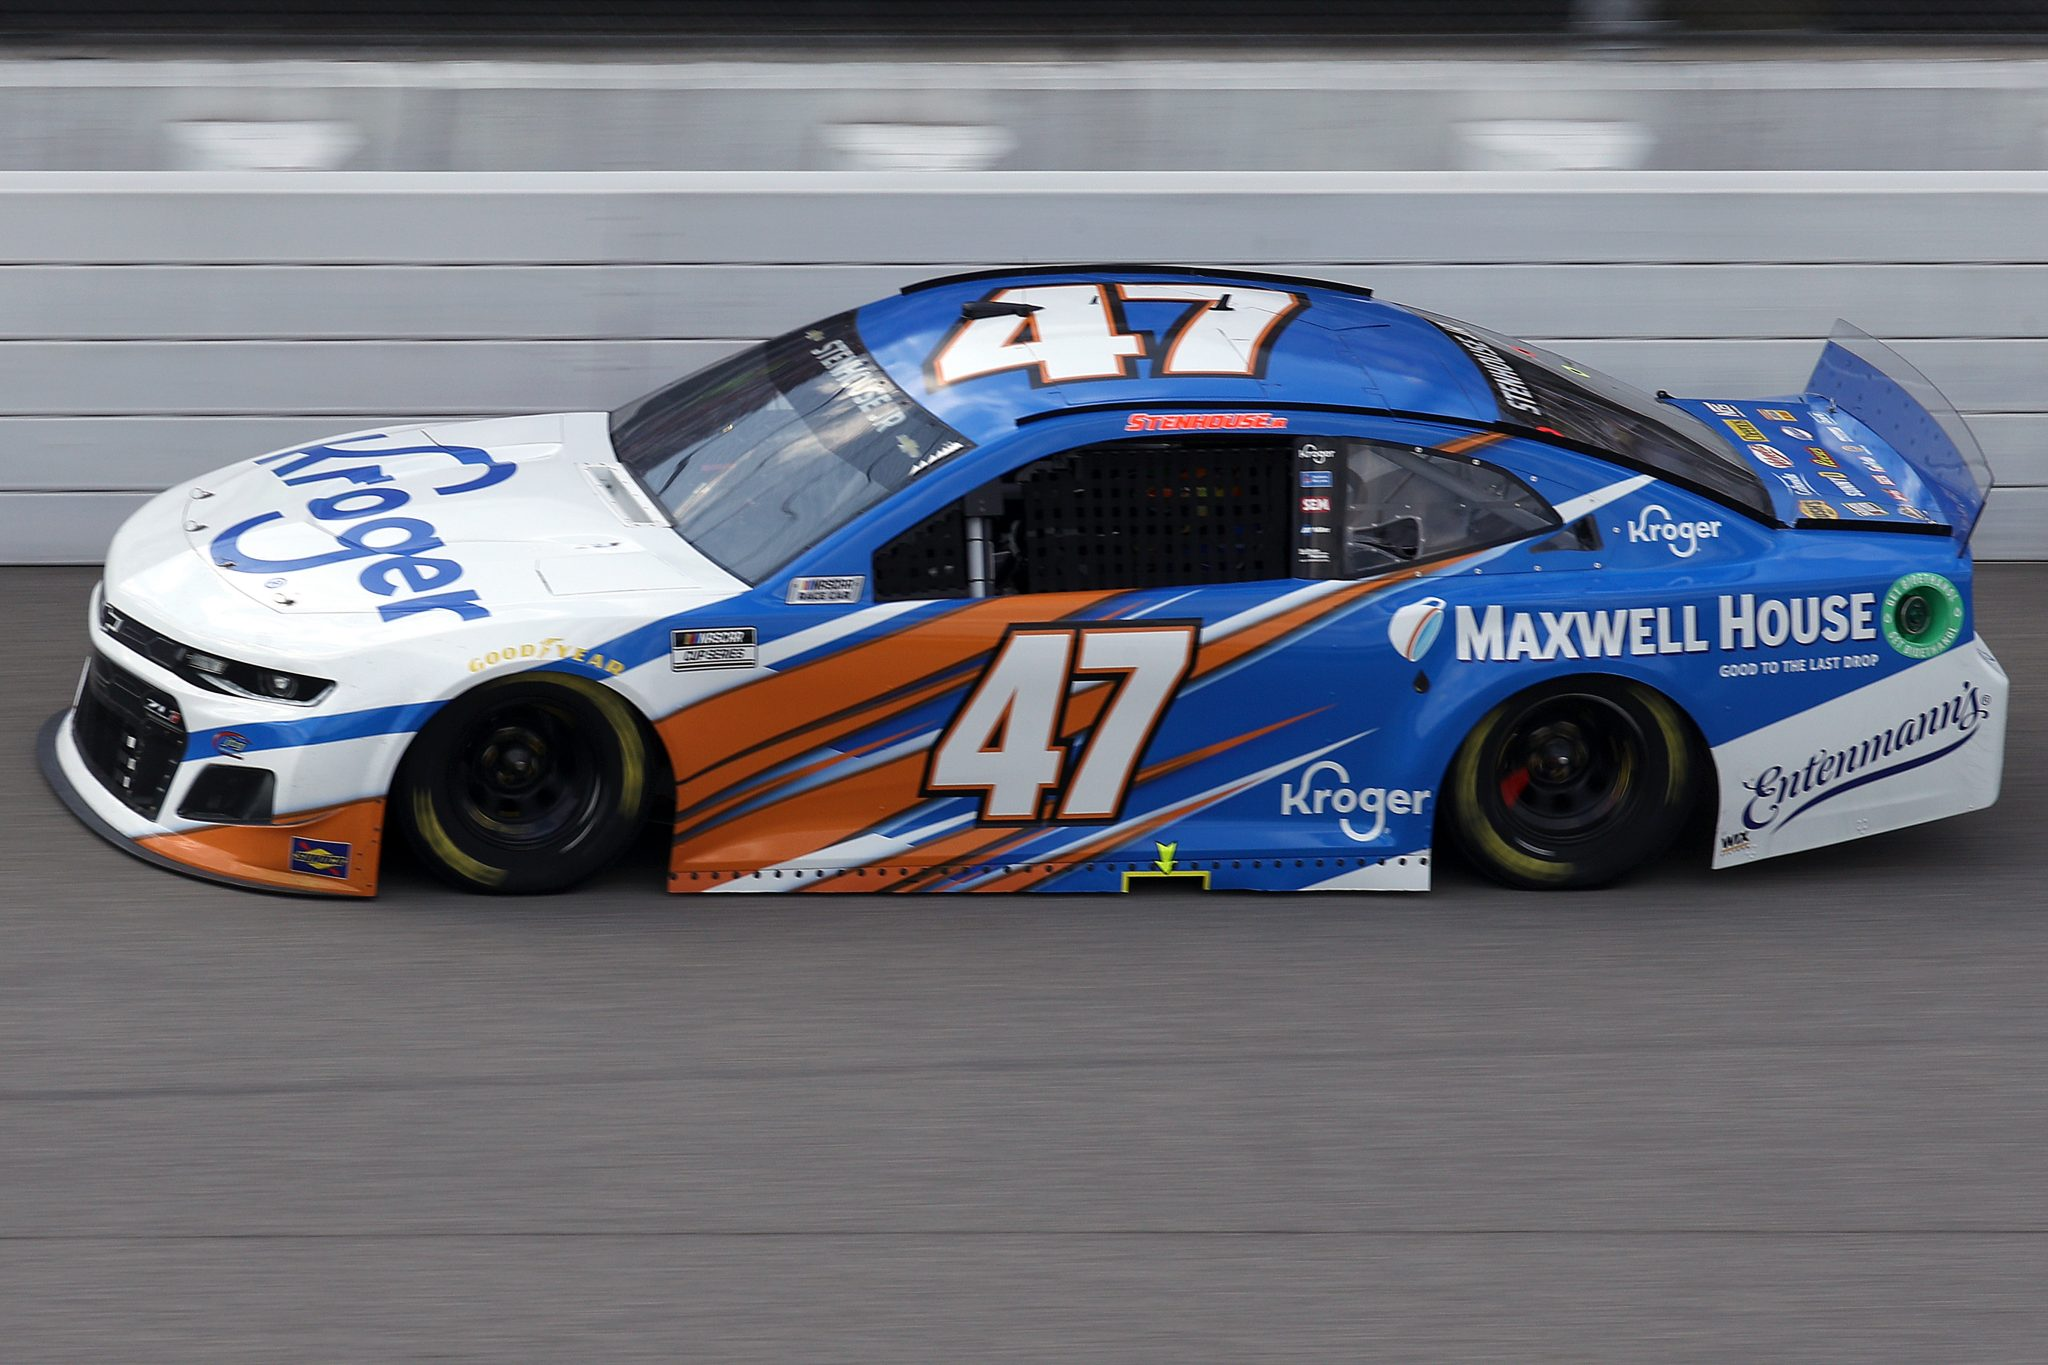 BROOKLYN, MICHIGAN - AUGUST 22: Ricky Stenhouse Jr., driver of the #47 Kroger/Maxwell House Chevrolet, drives during the NASCAR Cup Series FireKeepers Casino 400 at Michigan International Speedway on August 22, 2021 in Brooklyn, Michigan. (Photo by Sean Gardner/Getty Images)   Getty Images